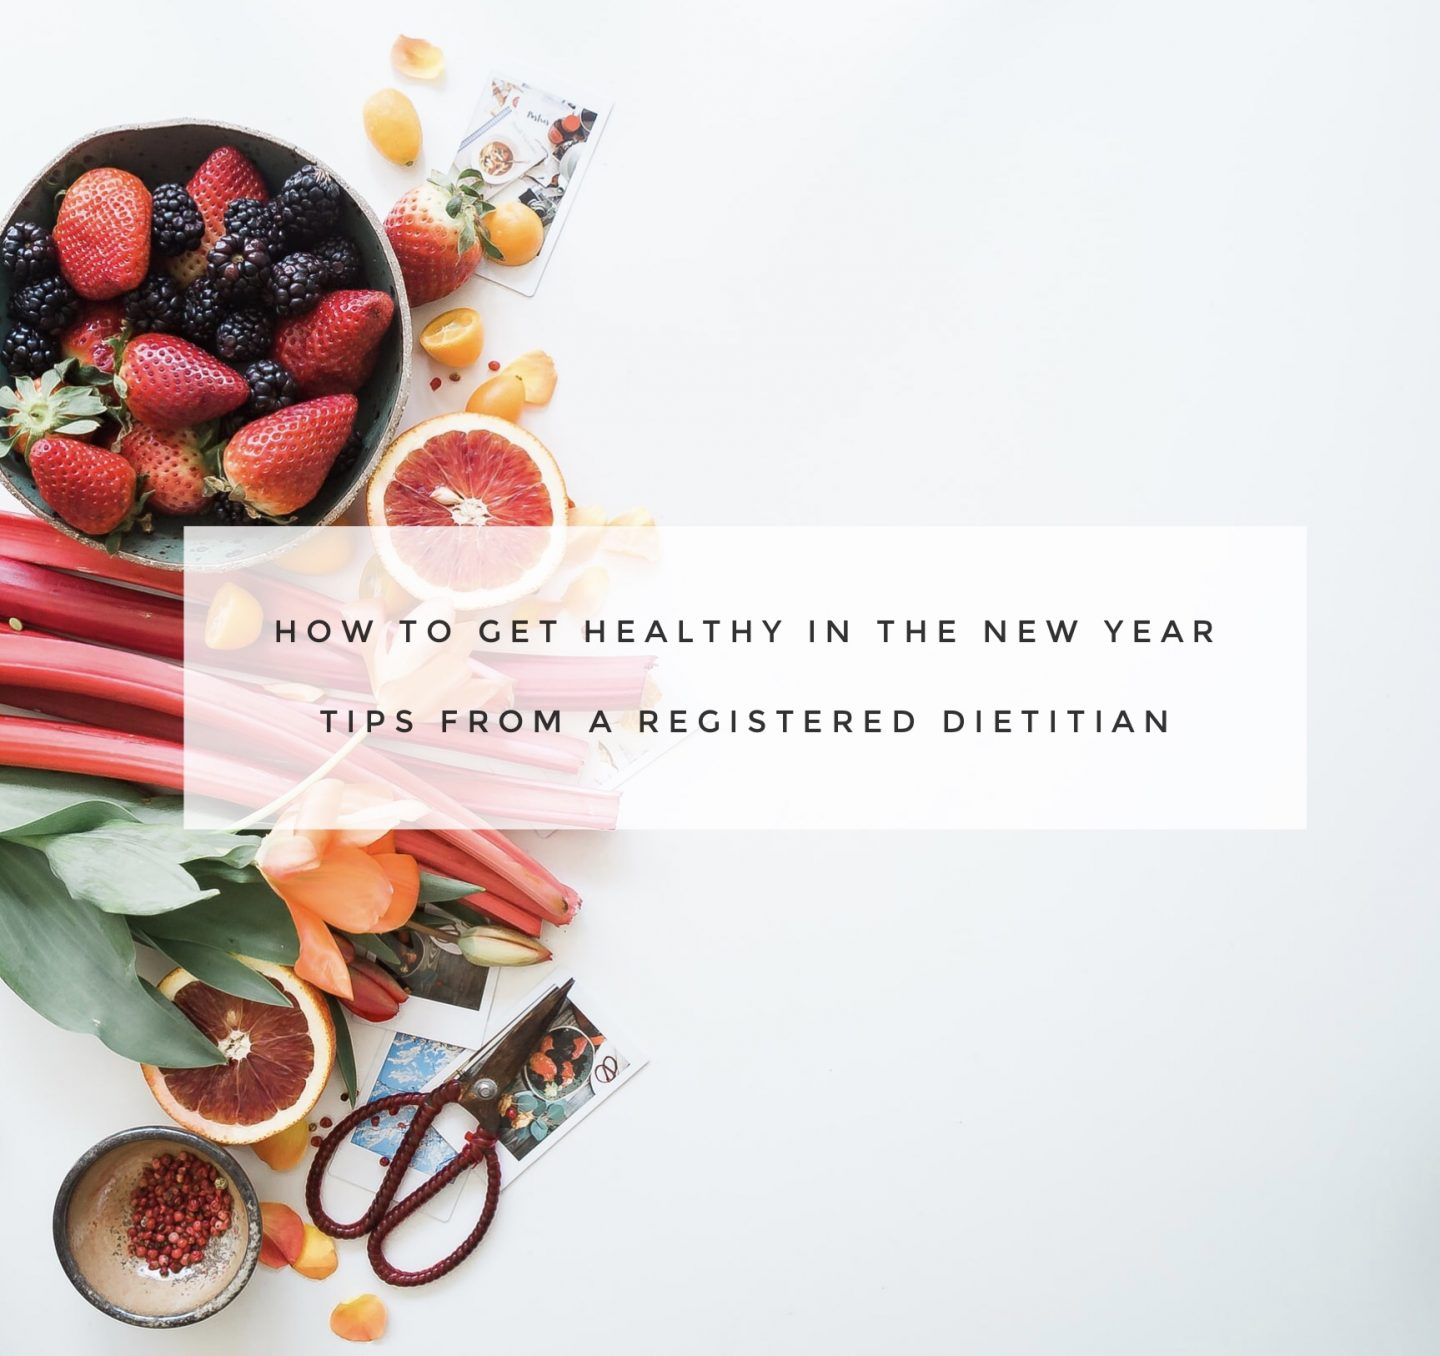 GETTING HEALTHY IN THE NEW YEAR: tips from a registered dietitian